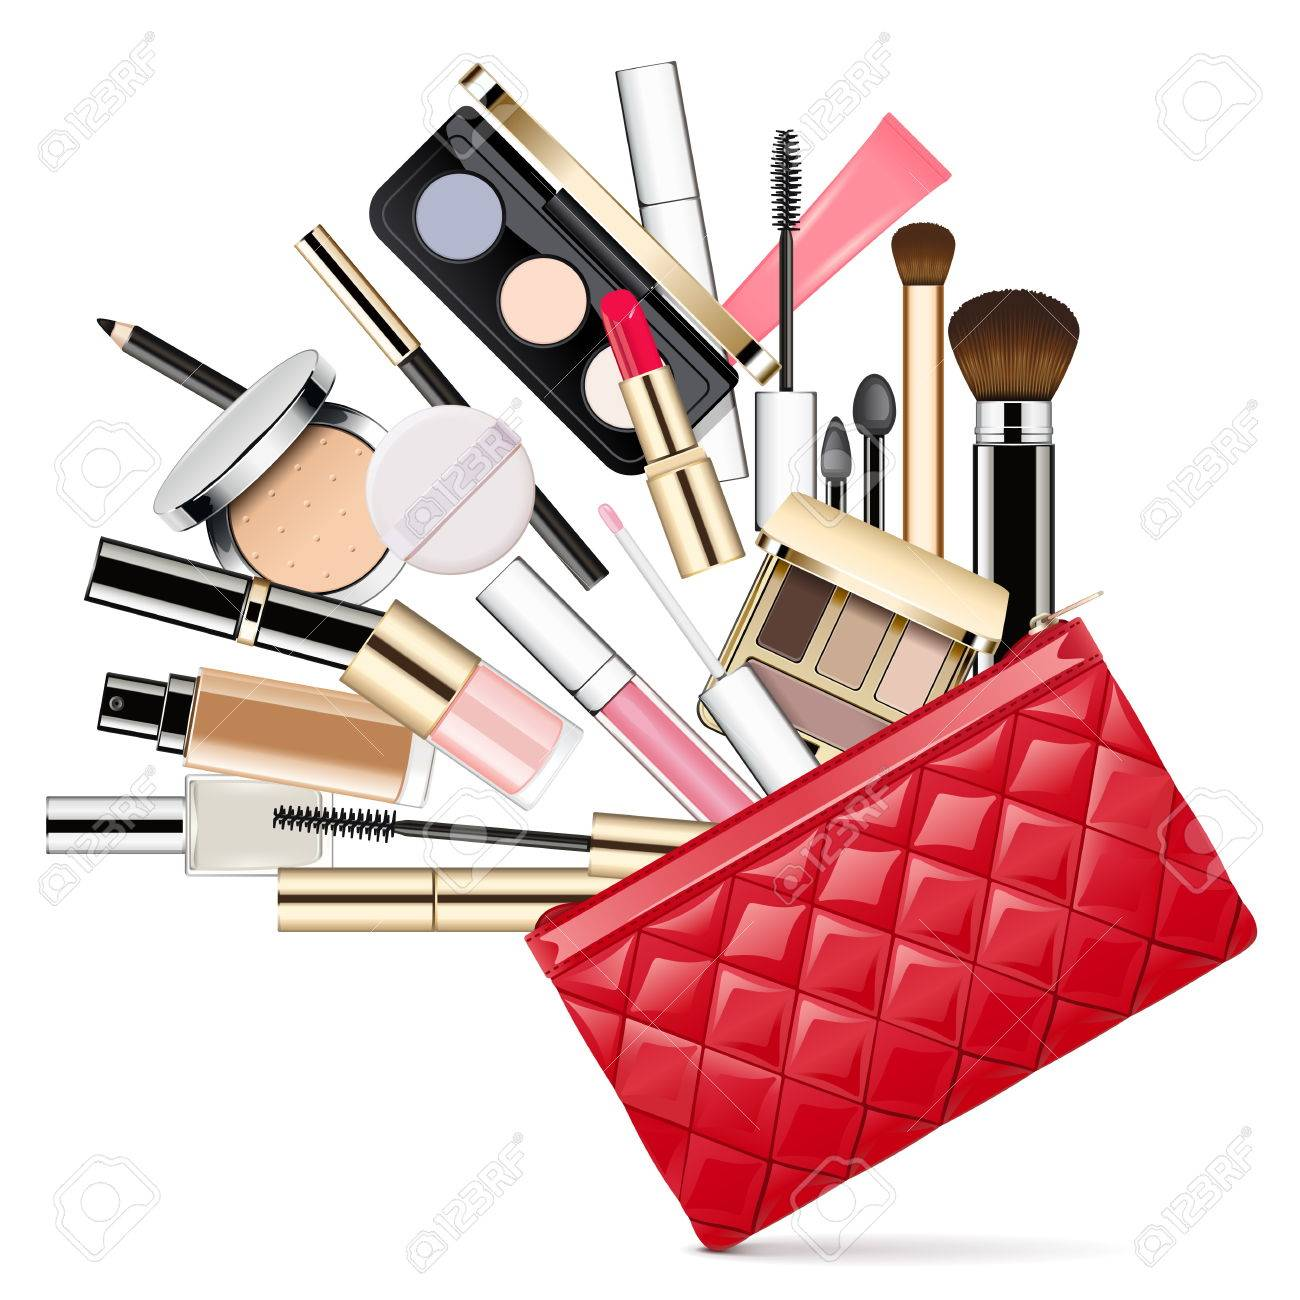 vector makeup bag isolated on white backdrop royalty free cliparts rh 123rf com